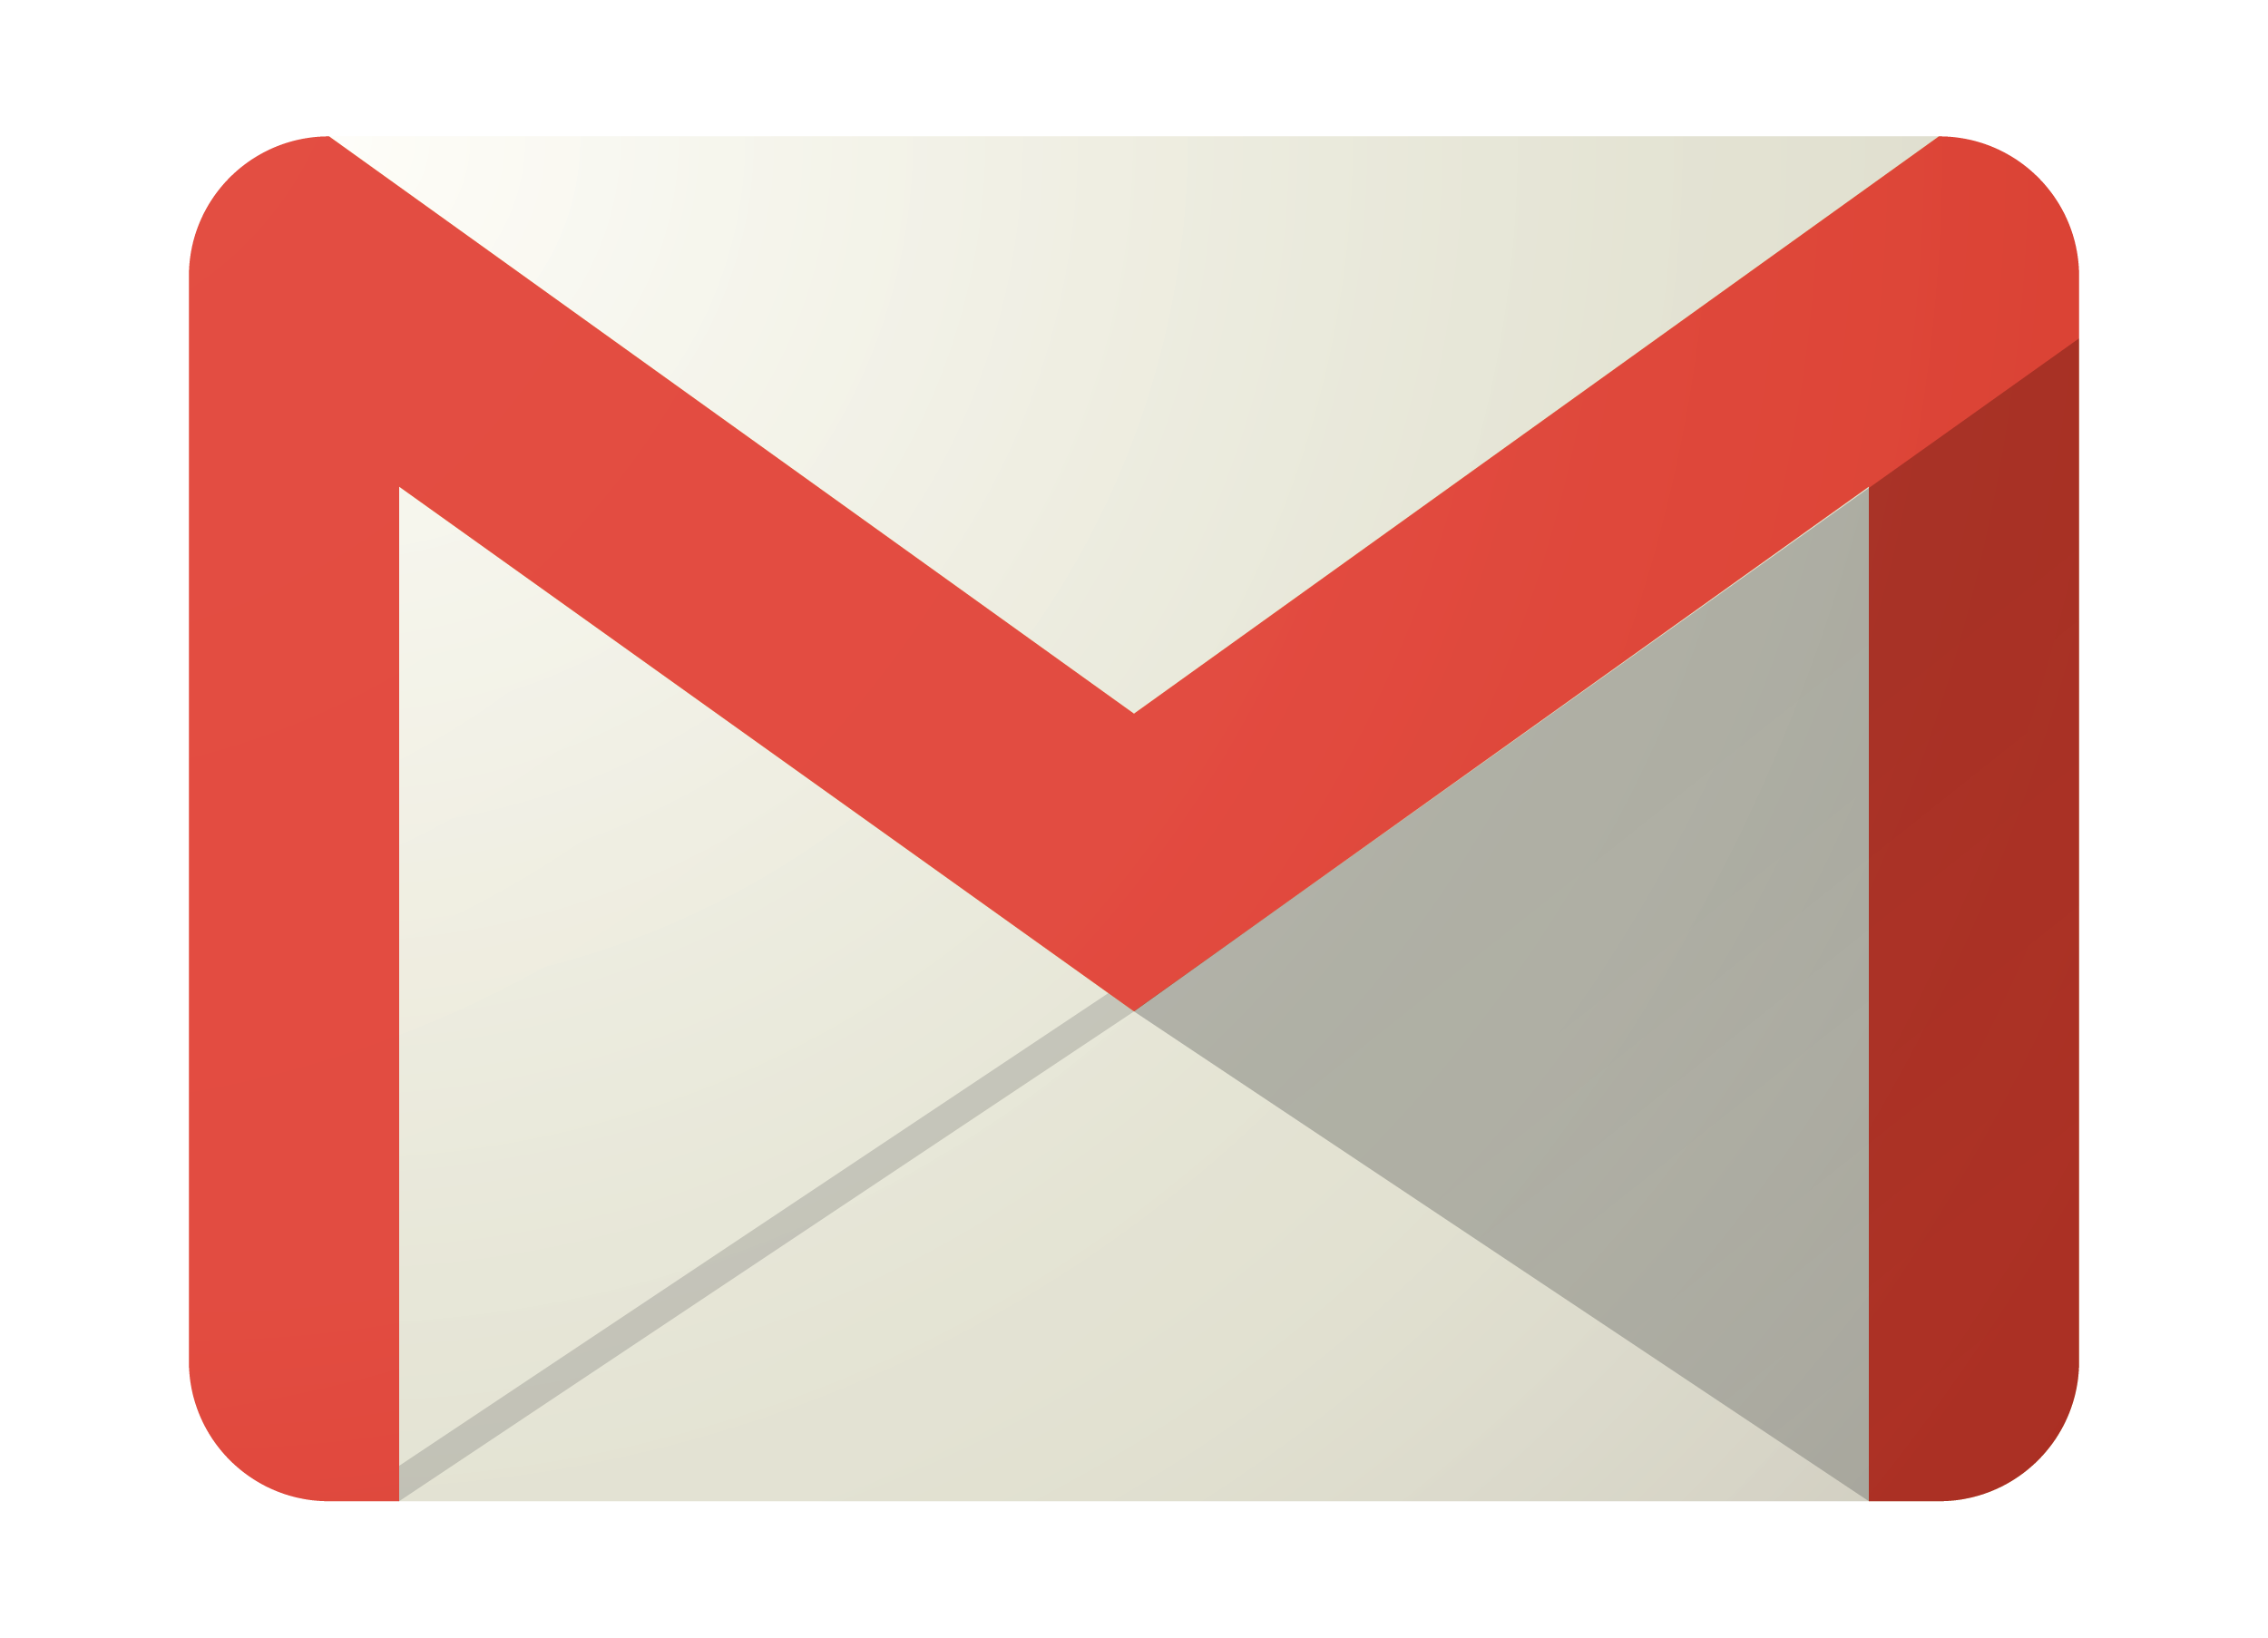 Email PNG HD Image.